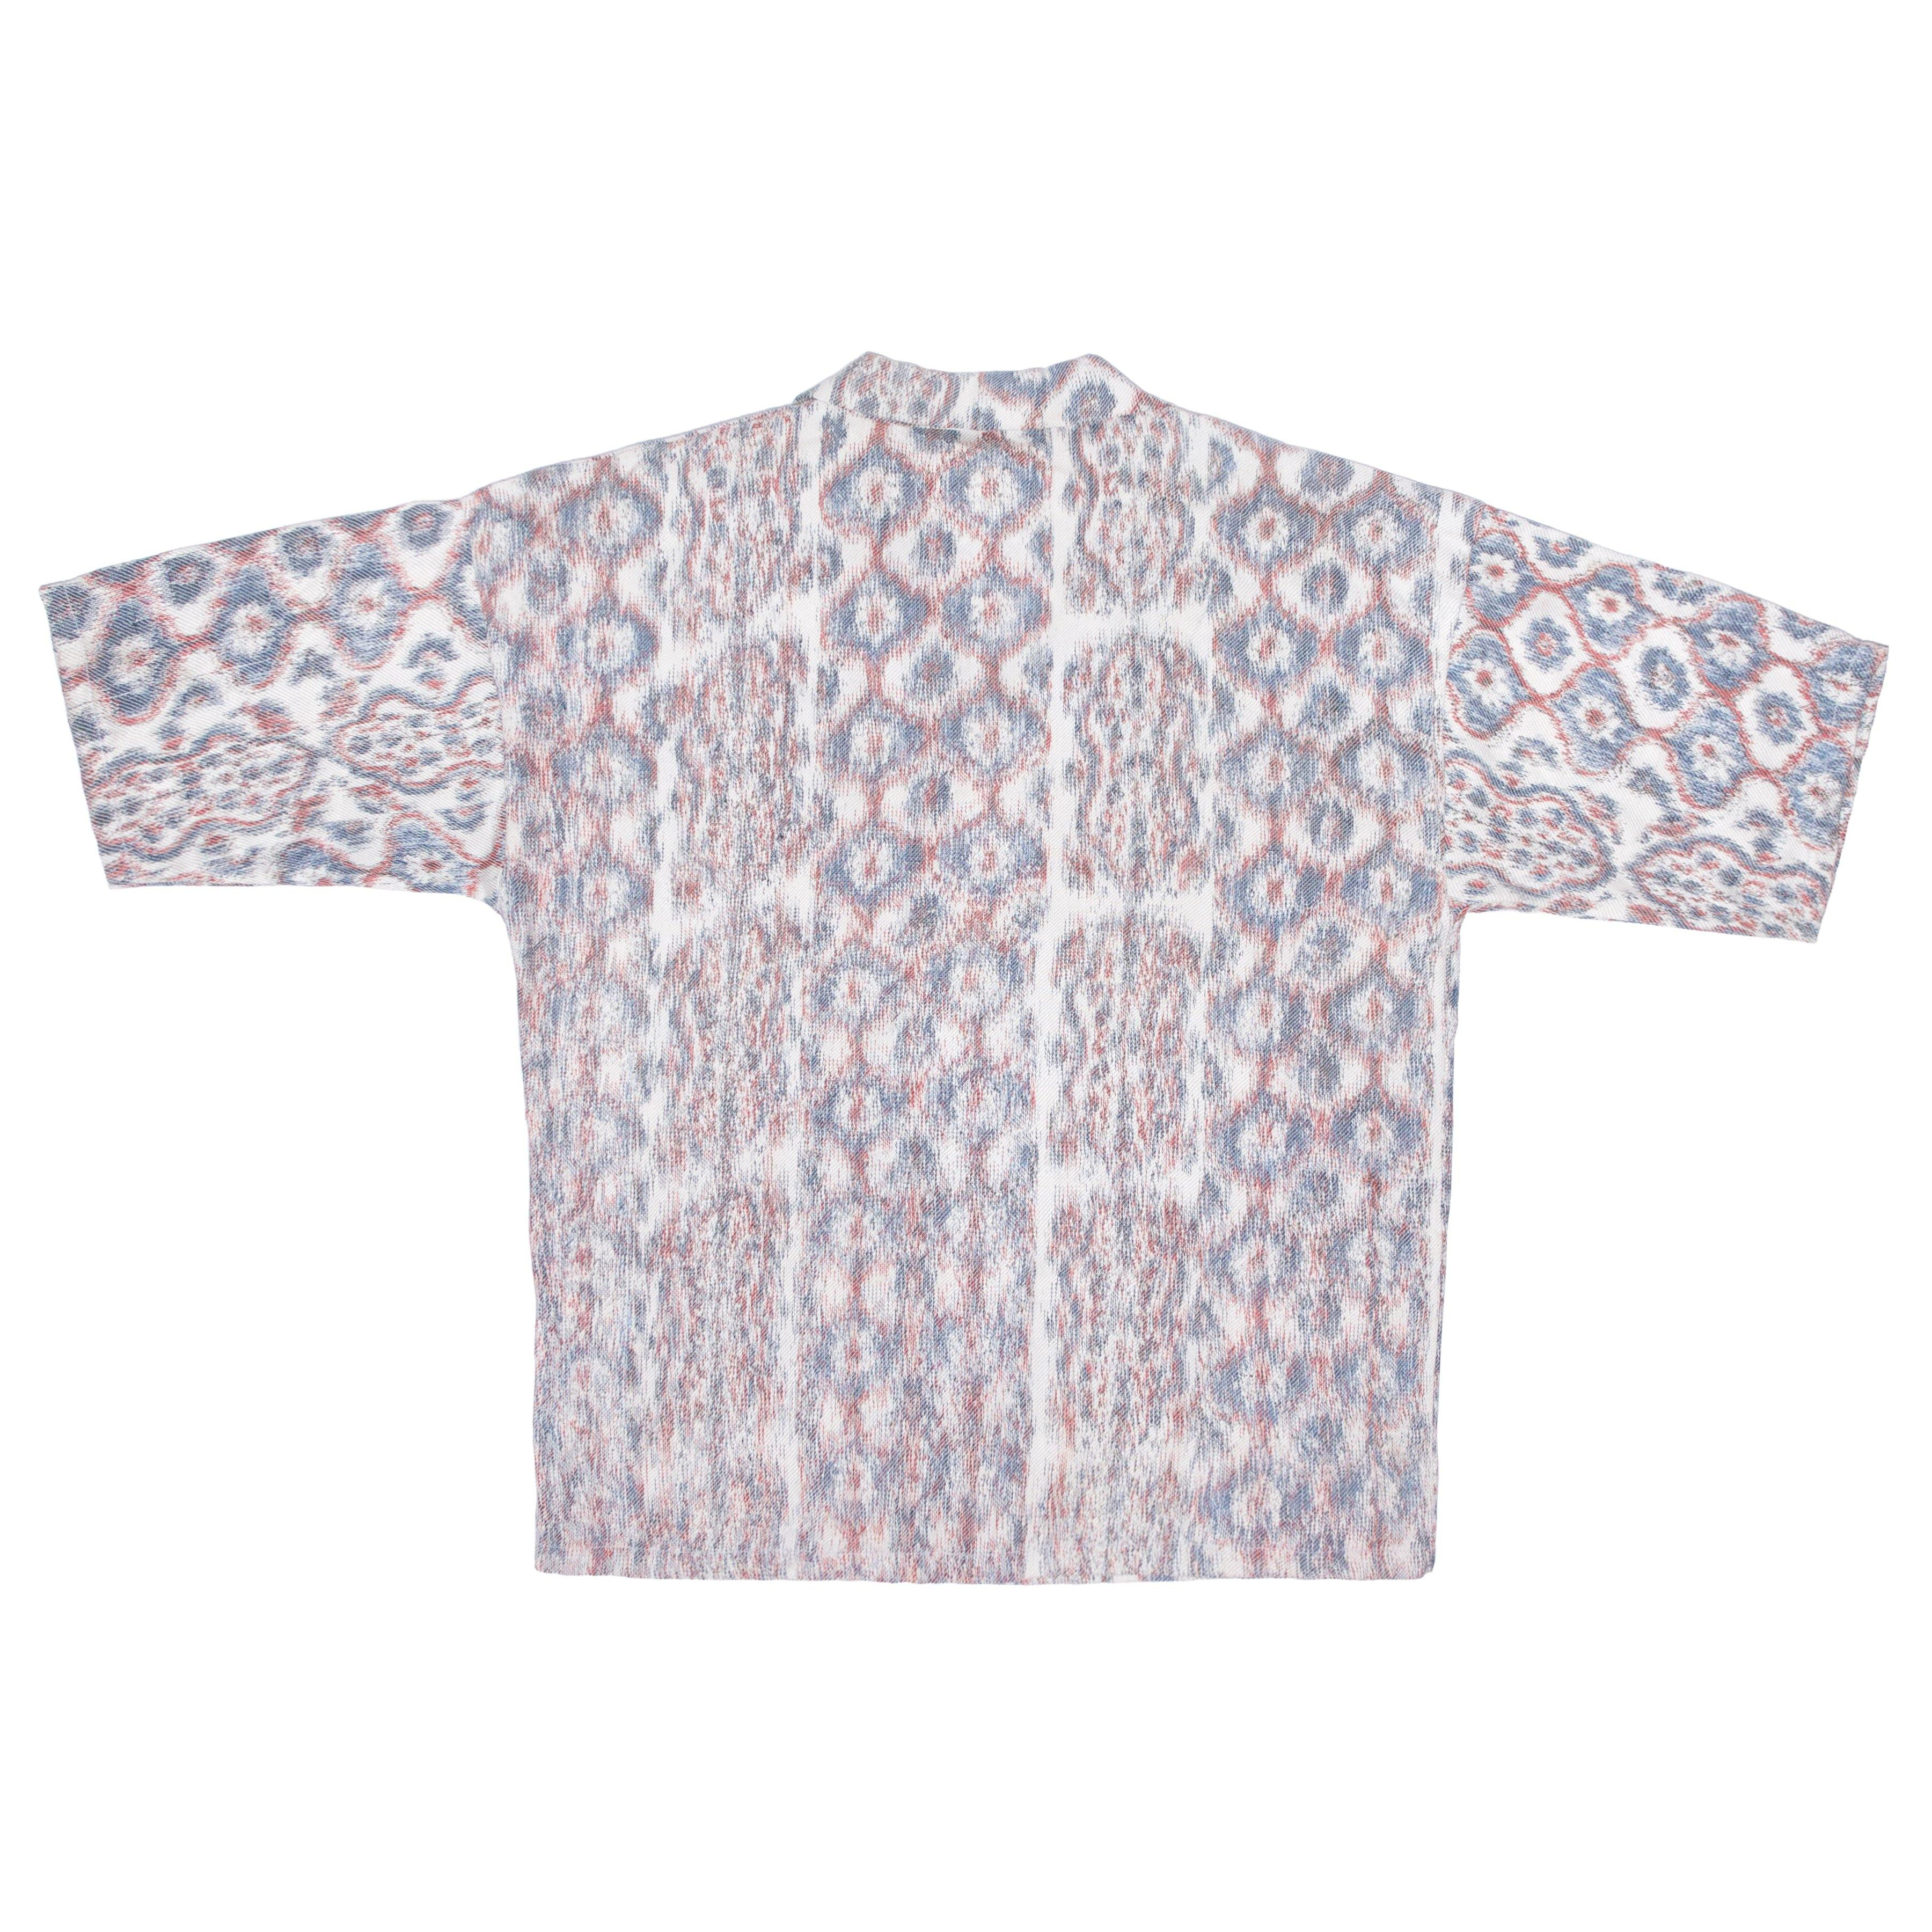 "Warp Printed ""ILLUSION"" Shirt"